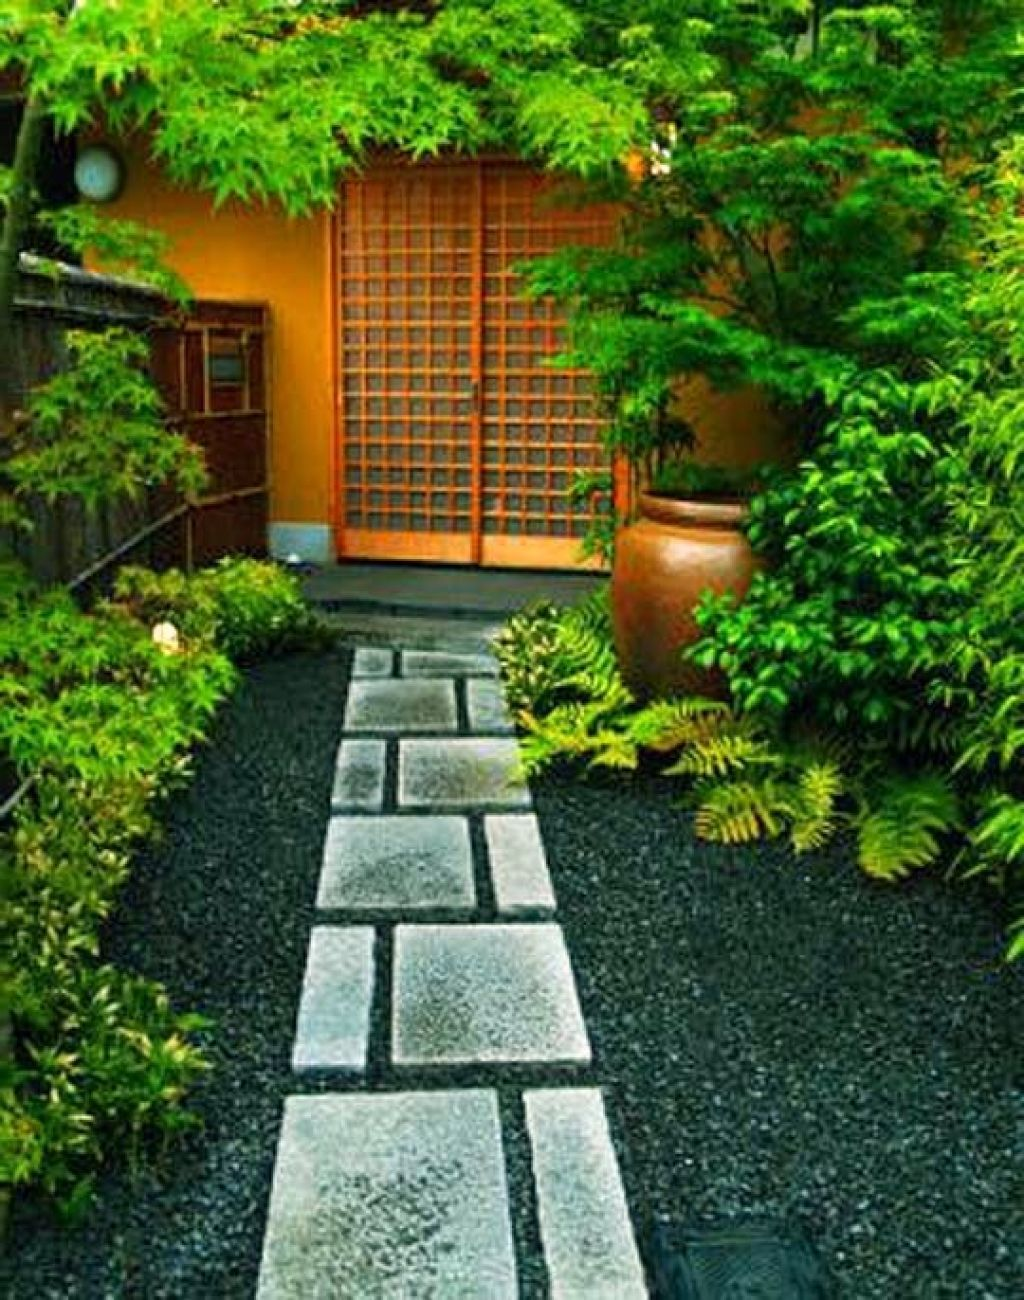 Japanese garden designs for small spaces providing fresh - Japanese garden ideas for small spaces ...